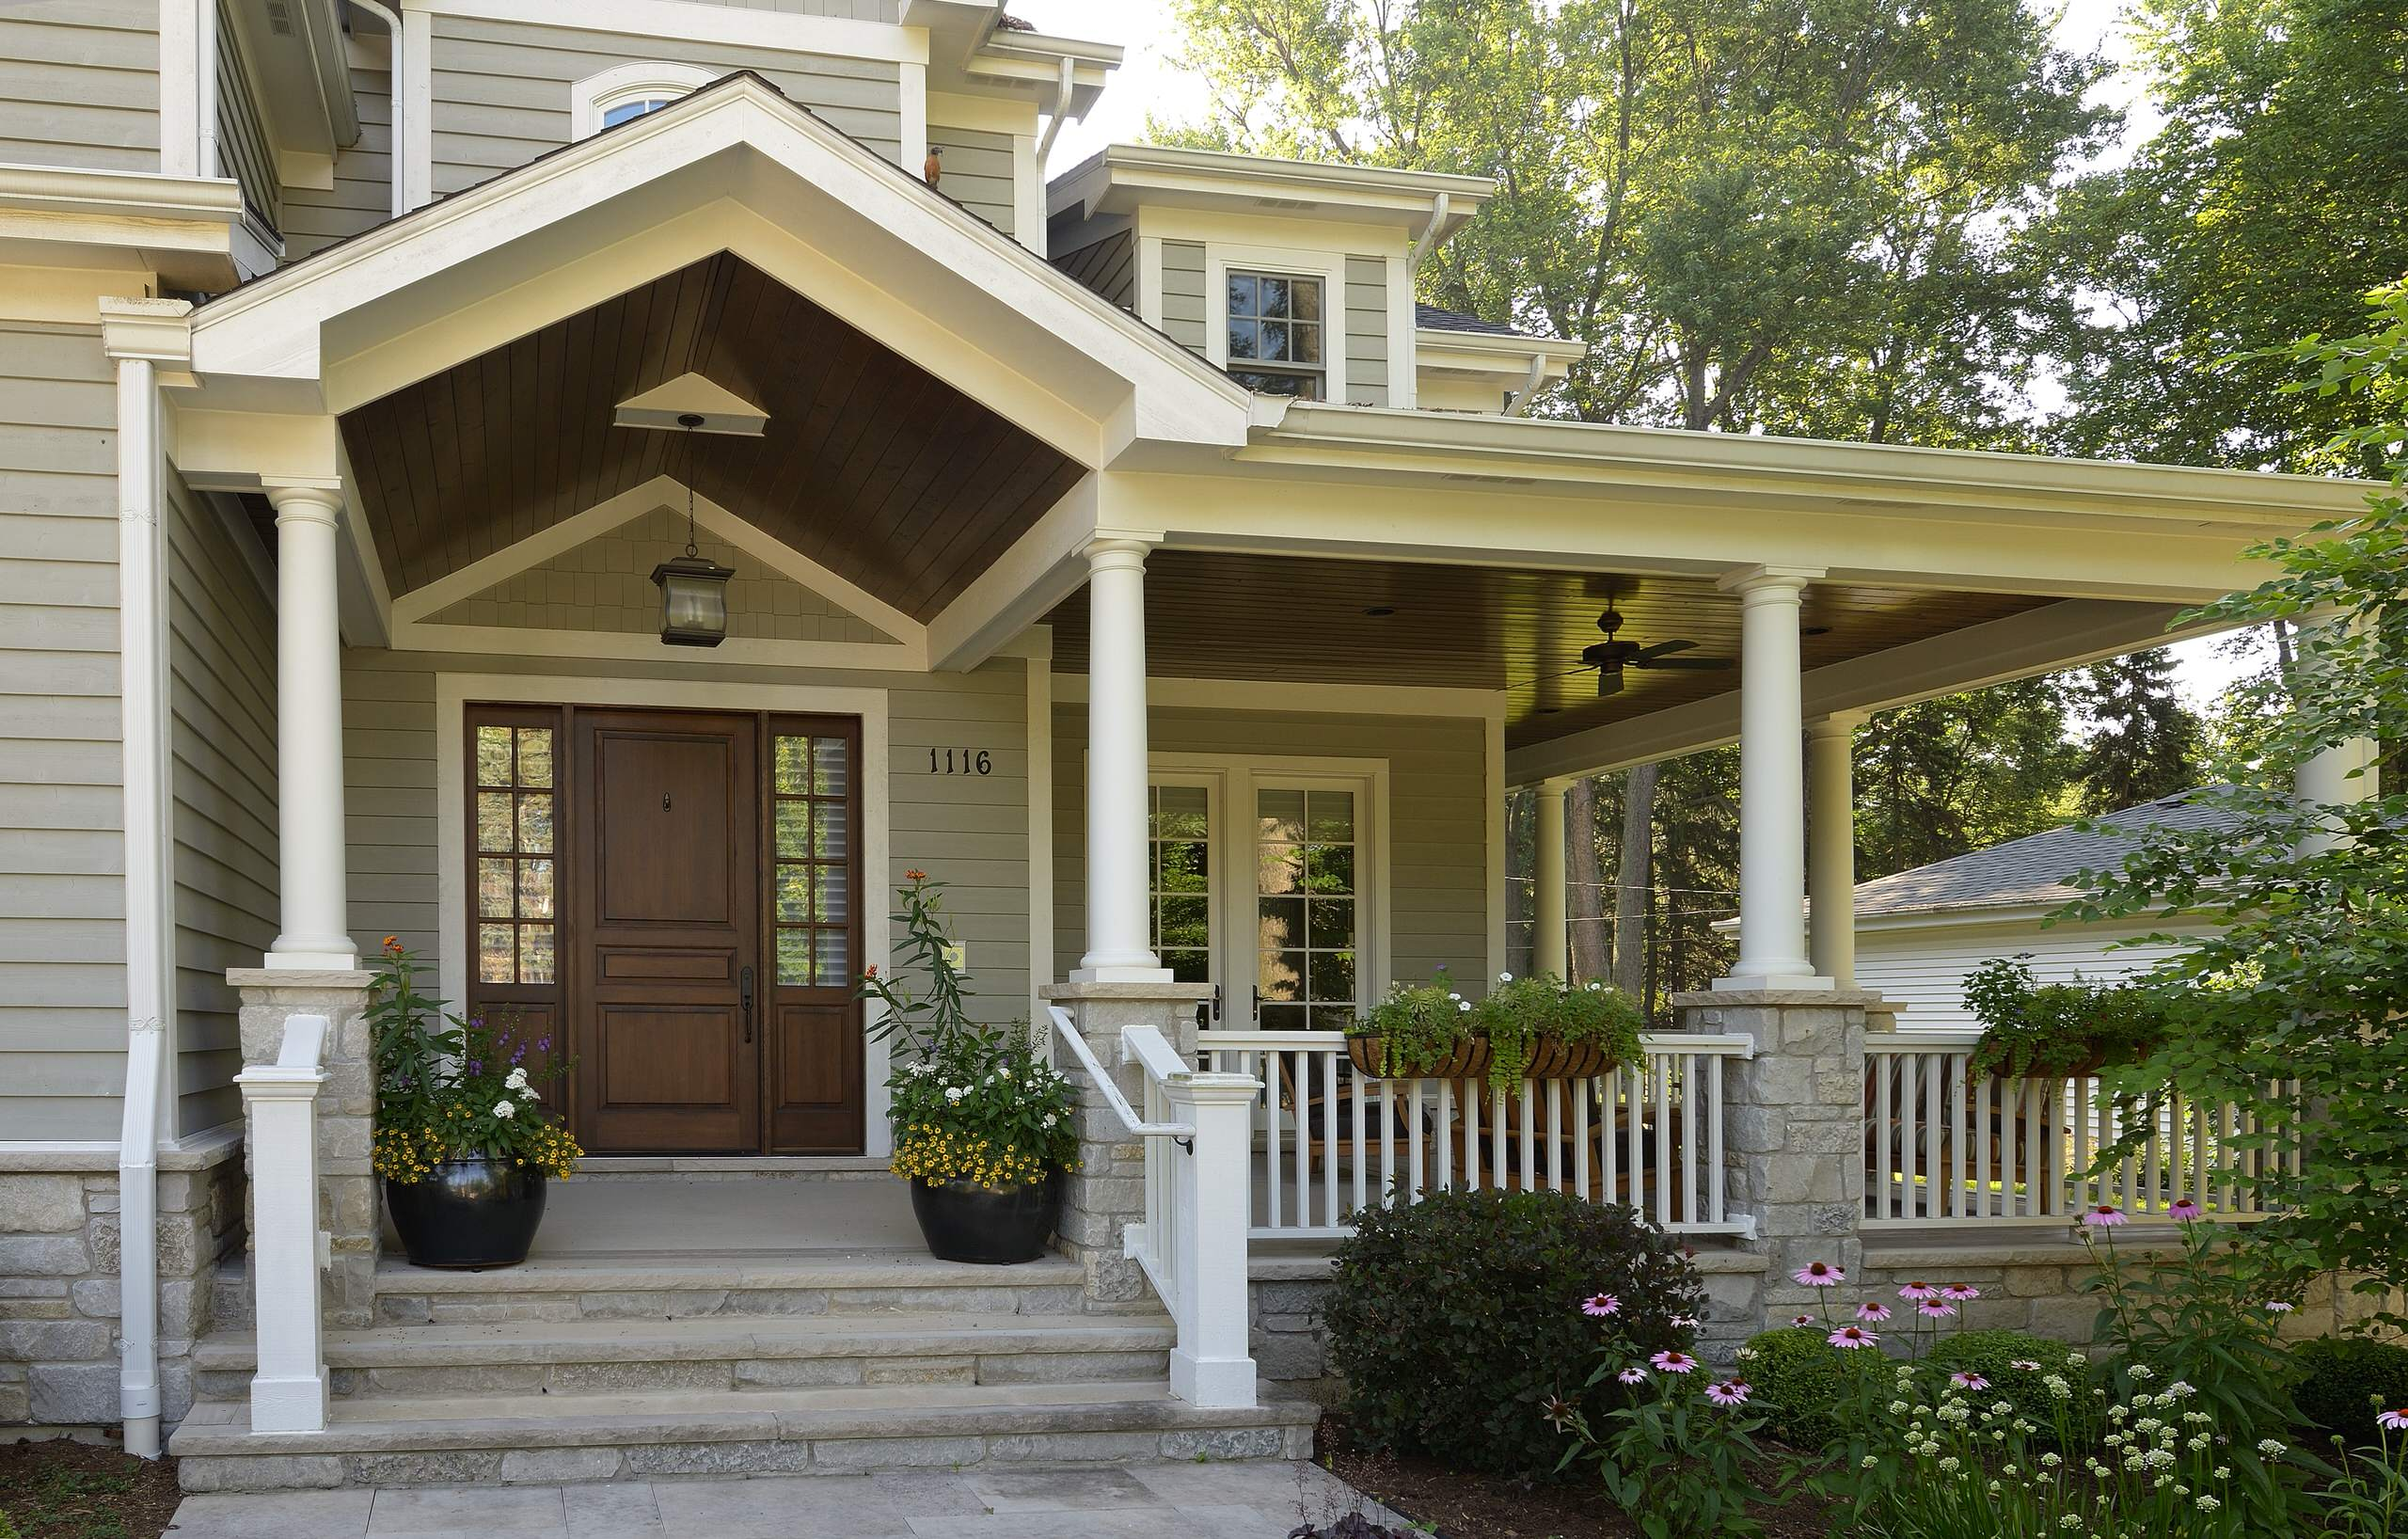 10 Astounding Porches for Your Lovely Home: Front Stoop Design With Porches And Front Entry Door Also Sidelights With Wood Siding And Porch Lights Plus Railings And Flower Beds With Ceiling Fan